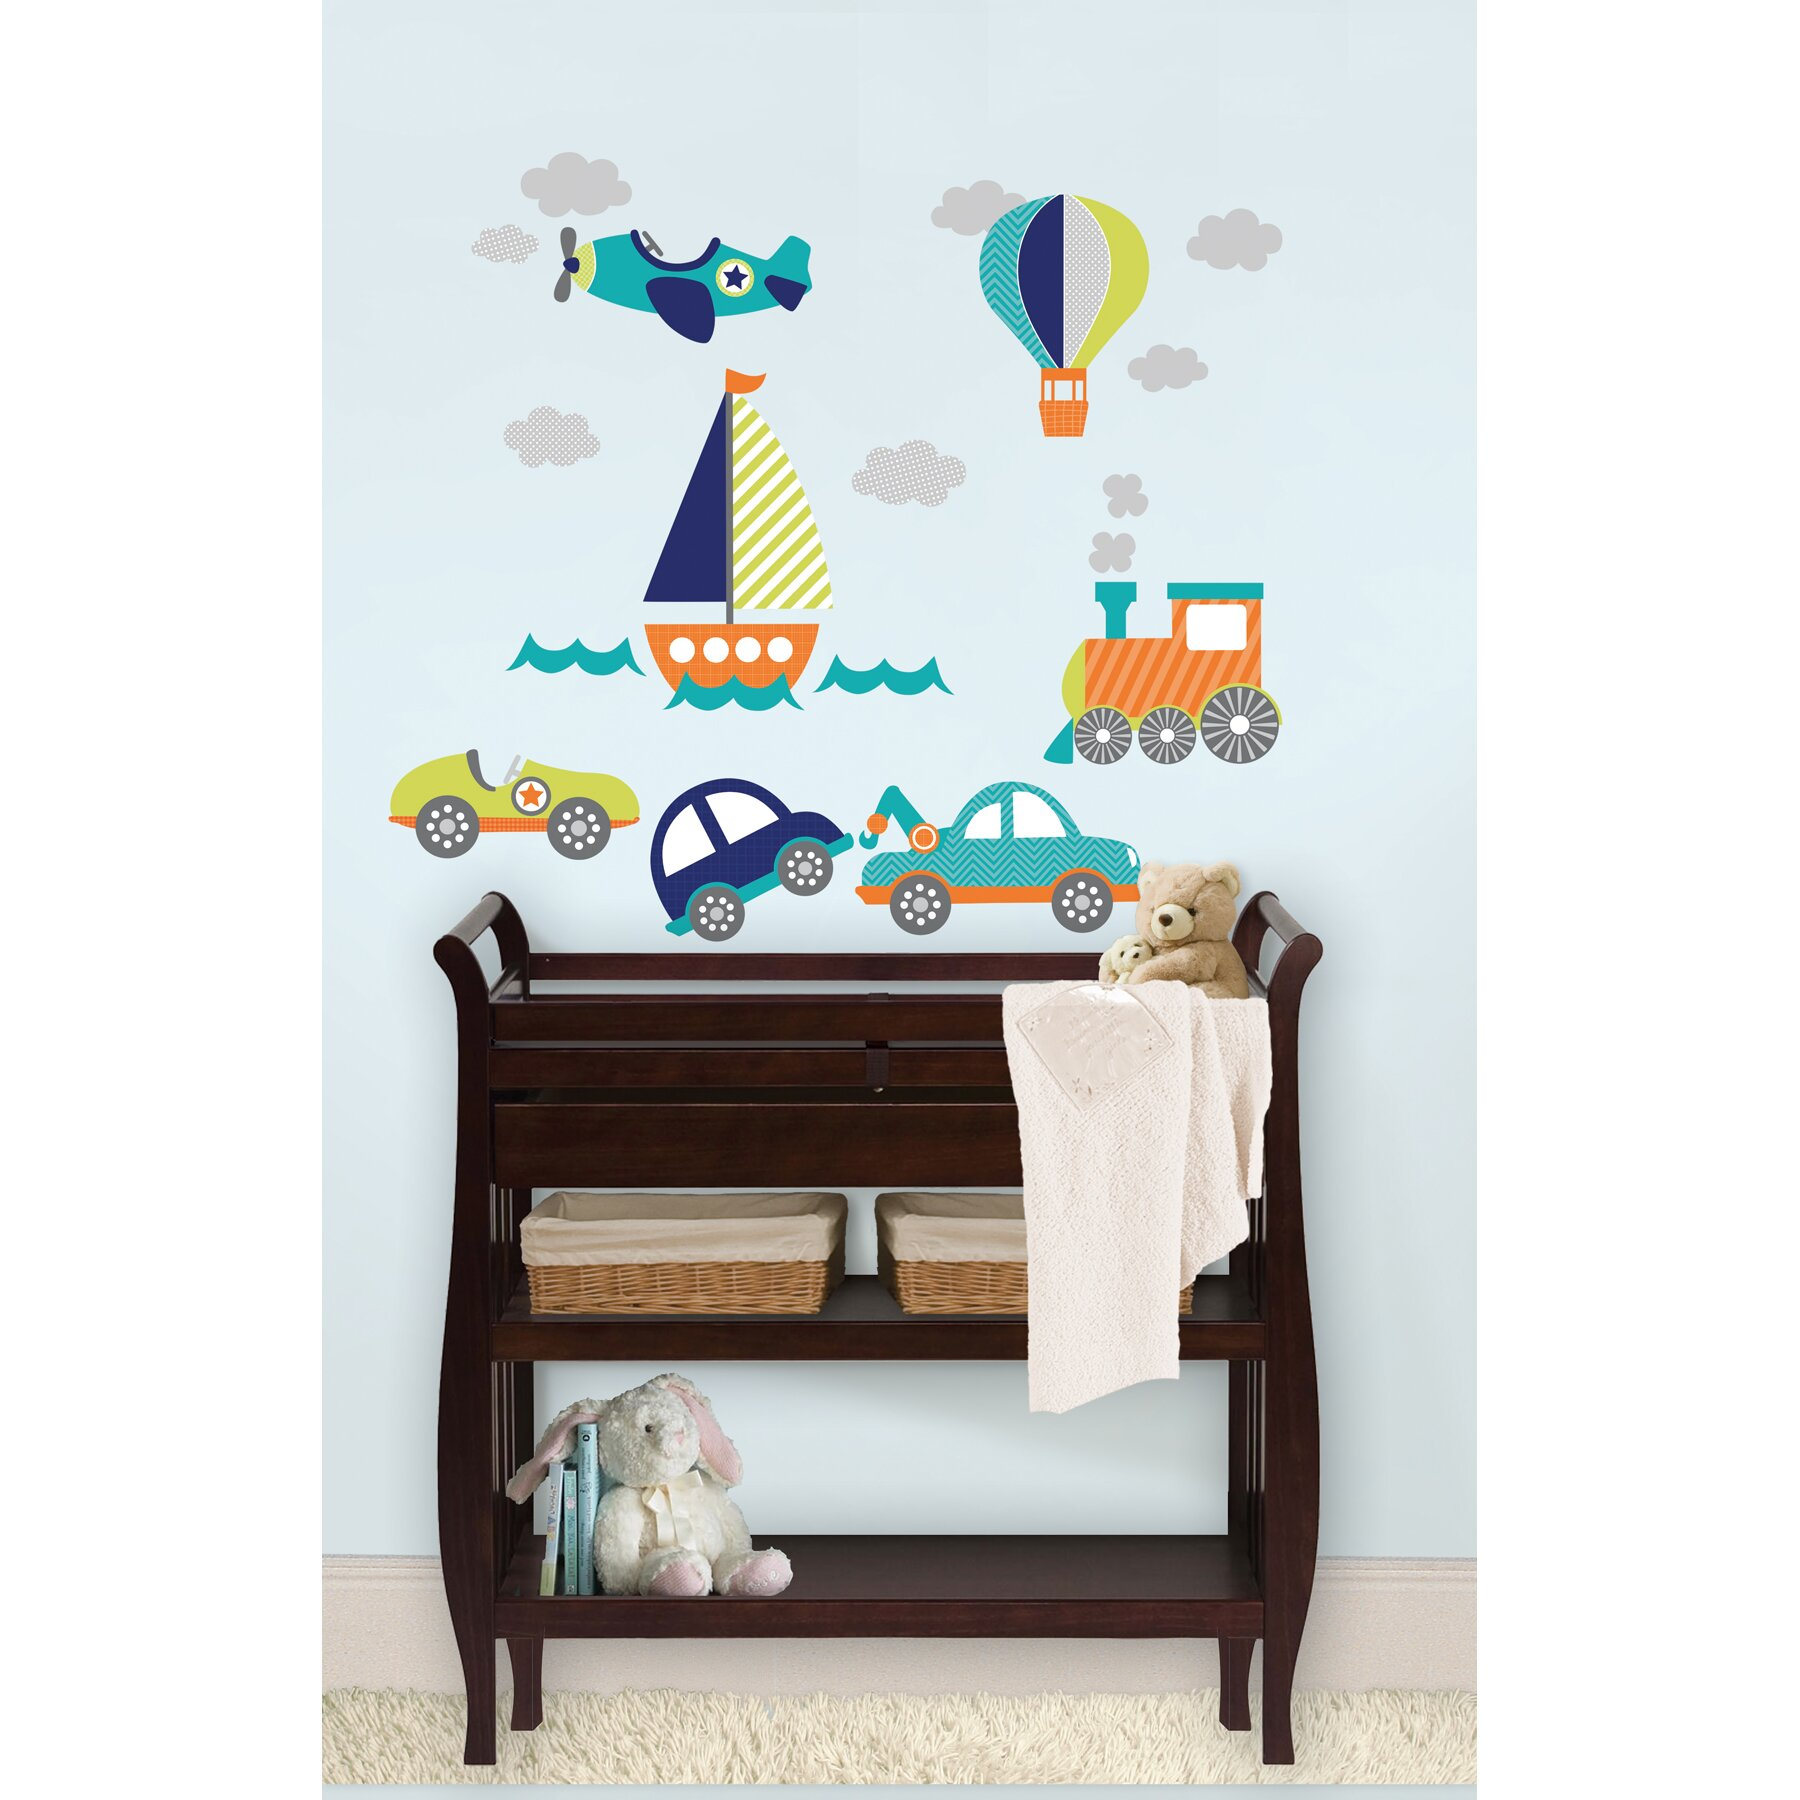 Wall Art Stickers Next Day Delivery : Wallpops wall art kit on the go piece decal set